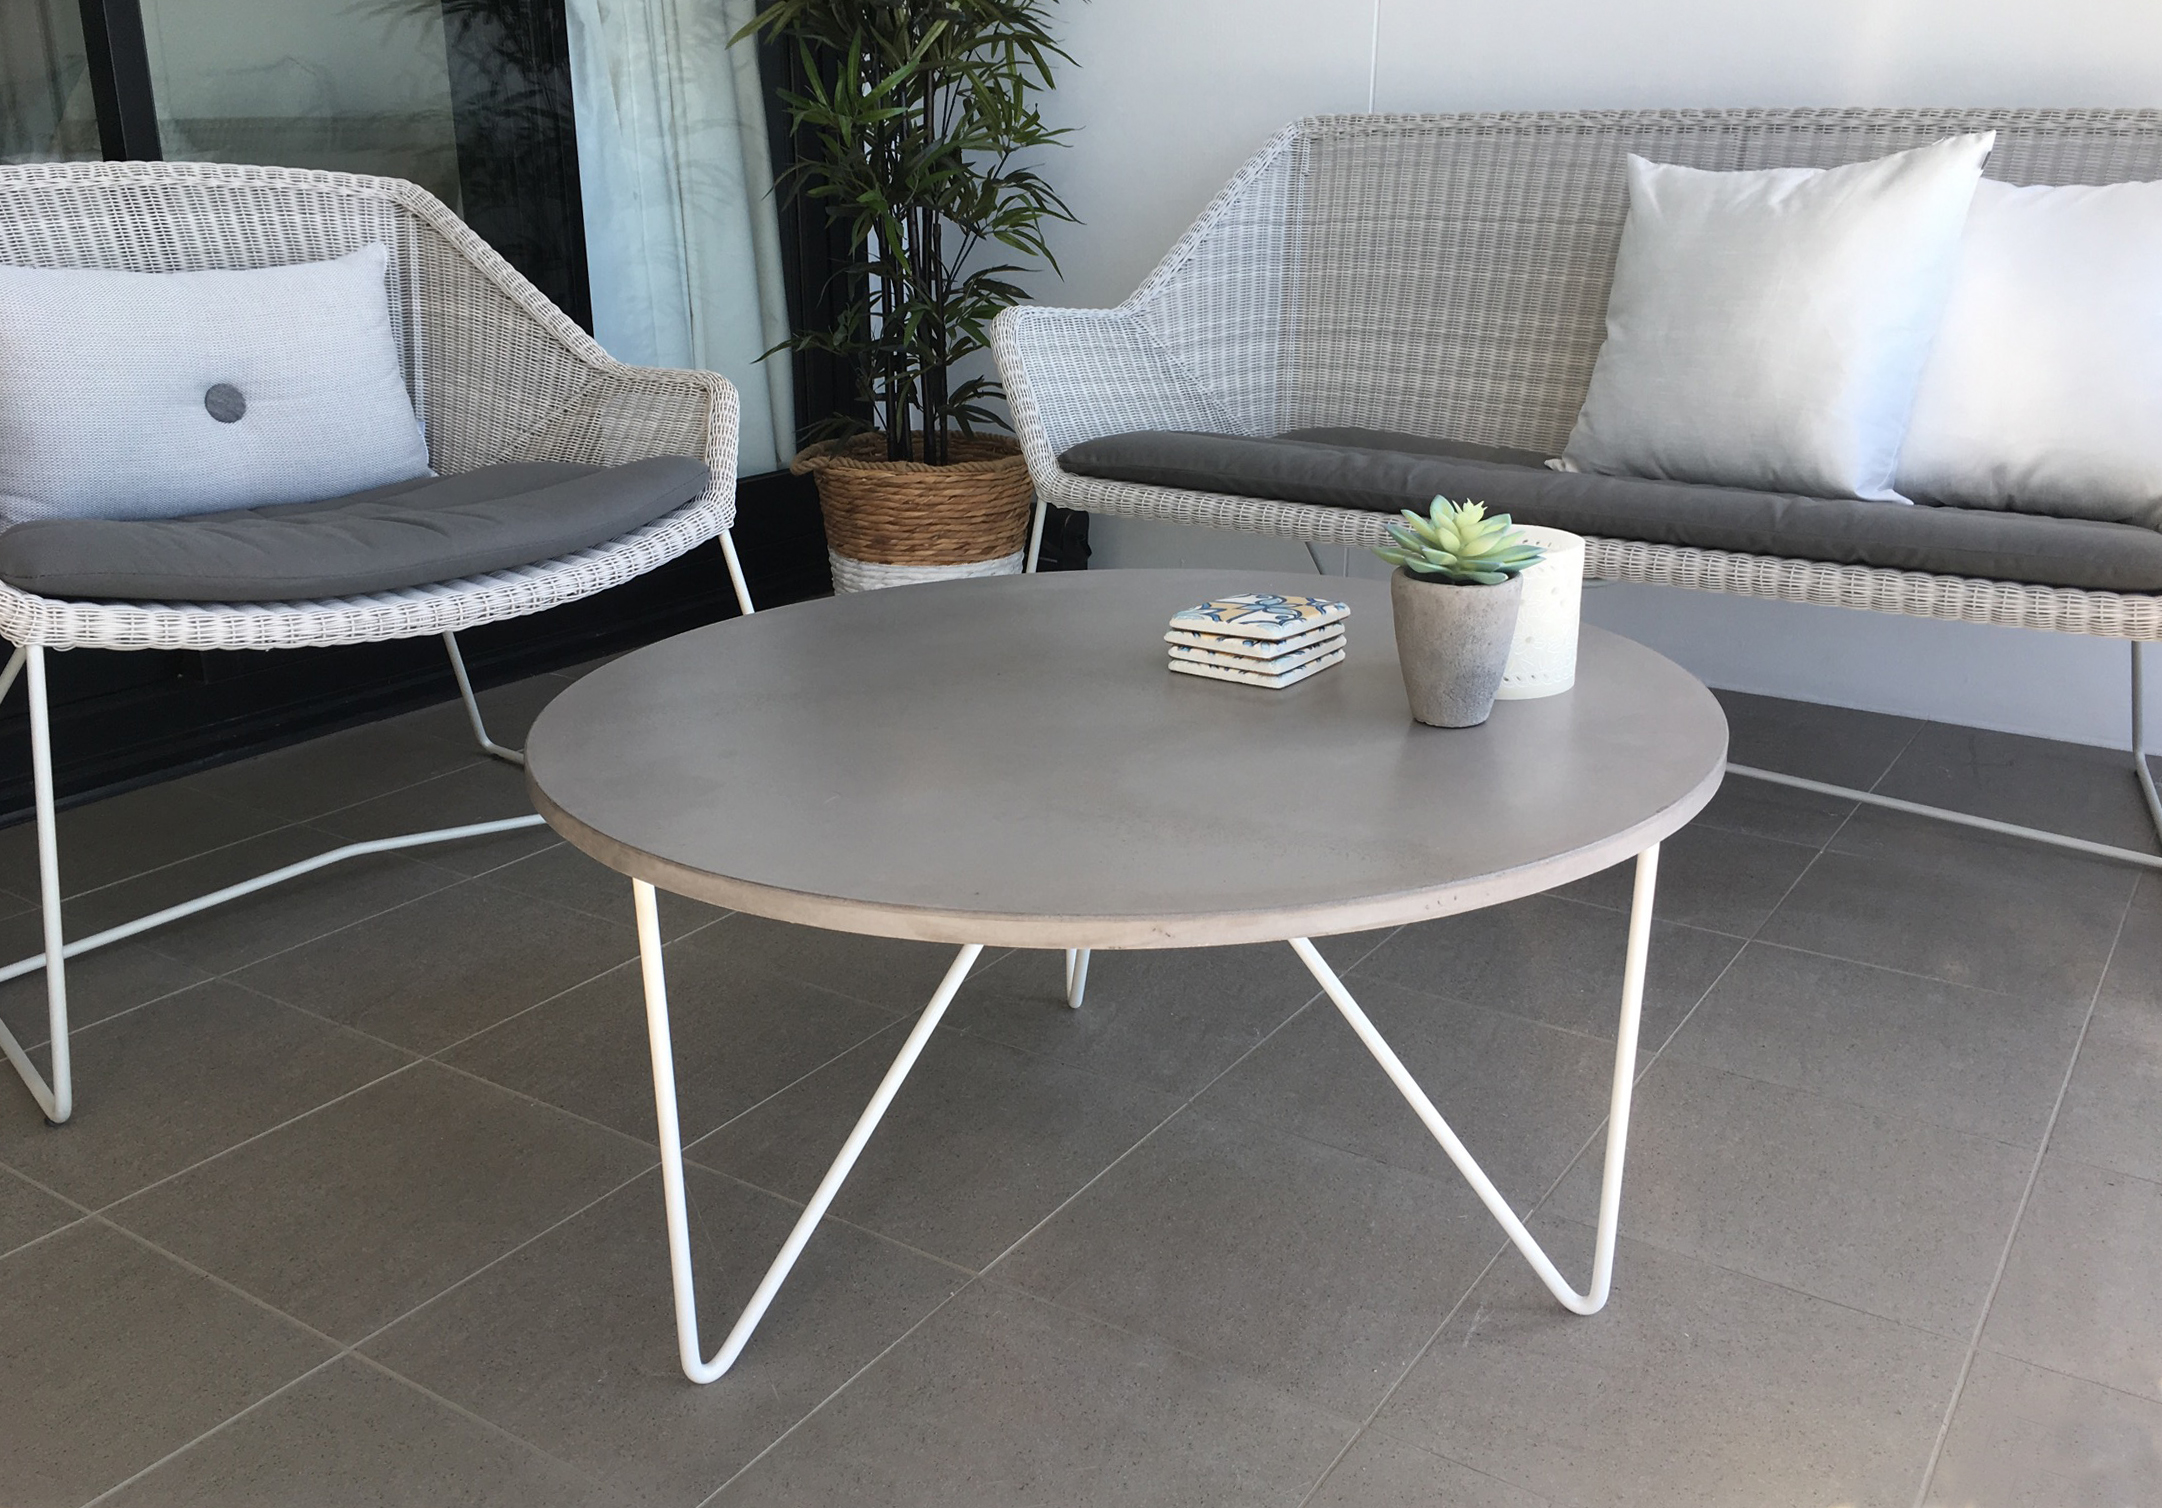 Pi Concrete Coffee Table (800 Diameter)